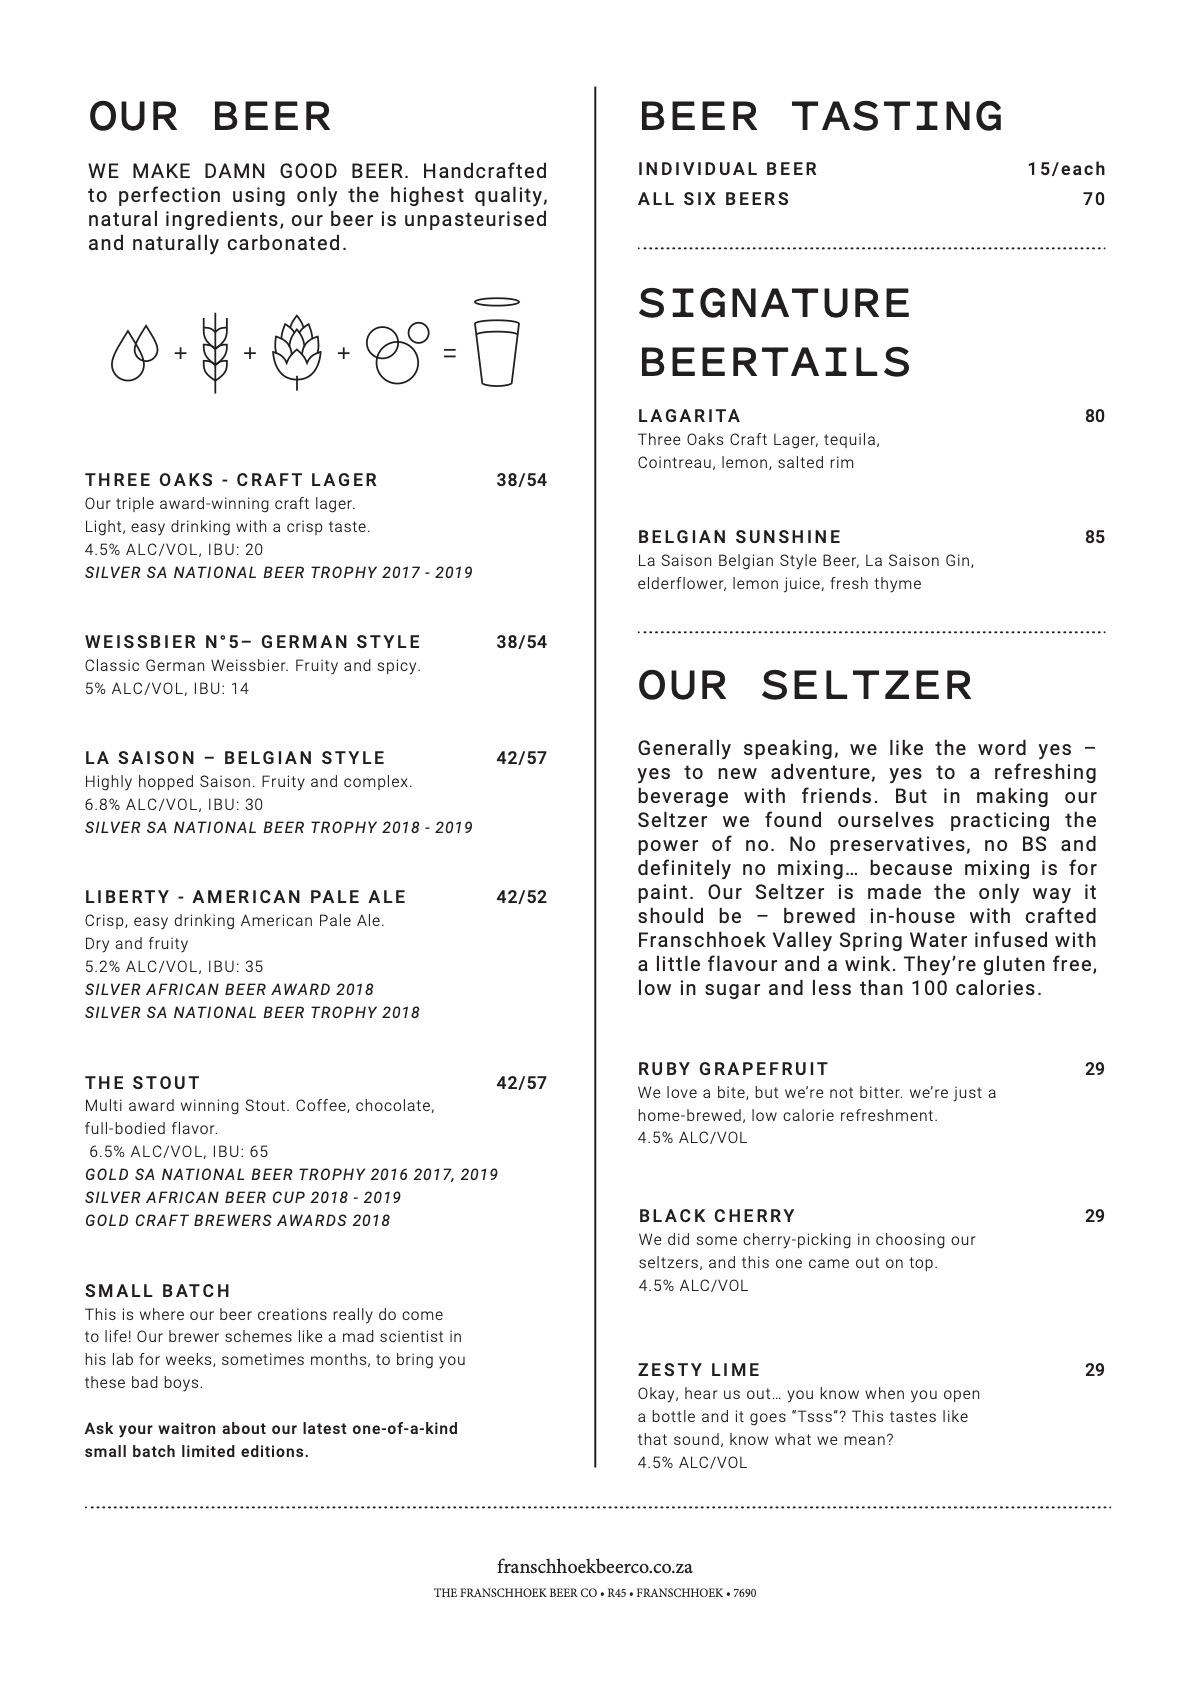 The Franschhoek Beer Company Menu